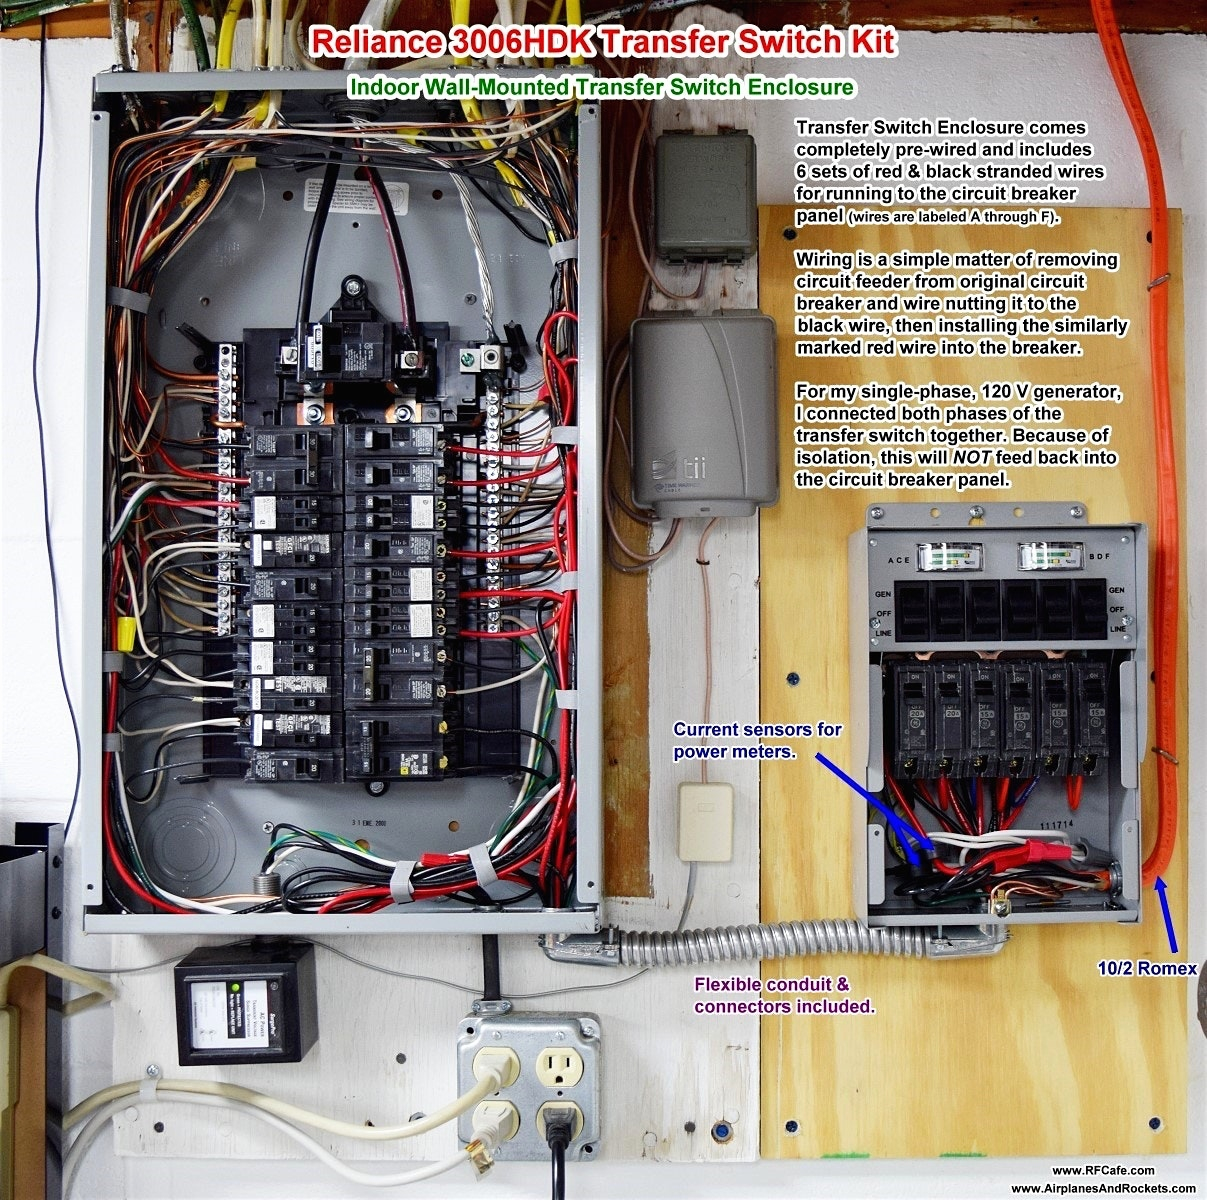 protran transfer switch wiring diagram sample reliance transfer switch wiring diagram reliance transfer switch wiring diagram reliance transfer switch wiring diagram reliance transfer switch wiring diagram